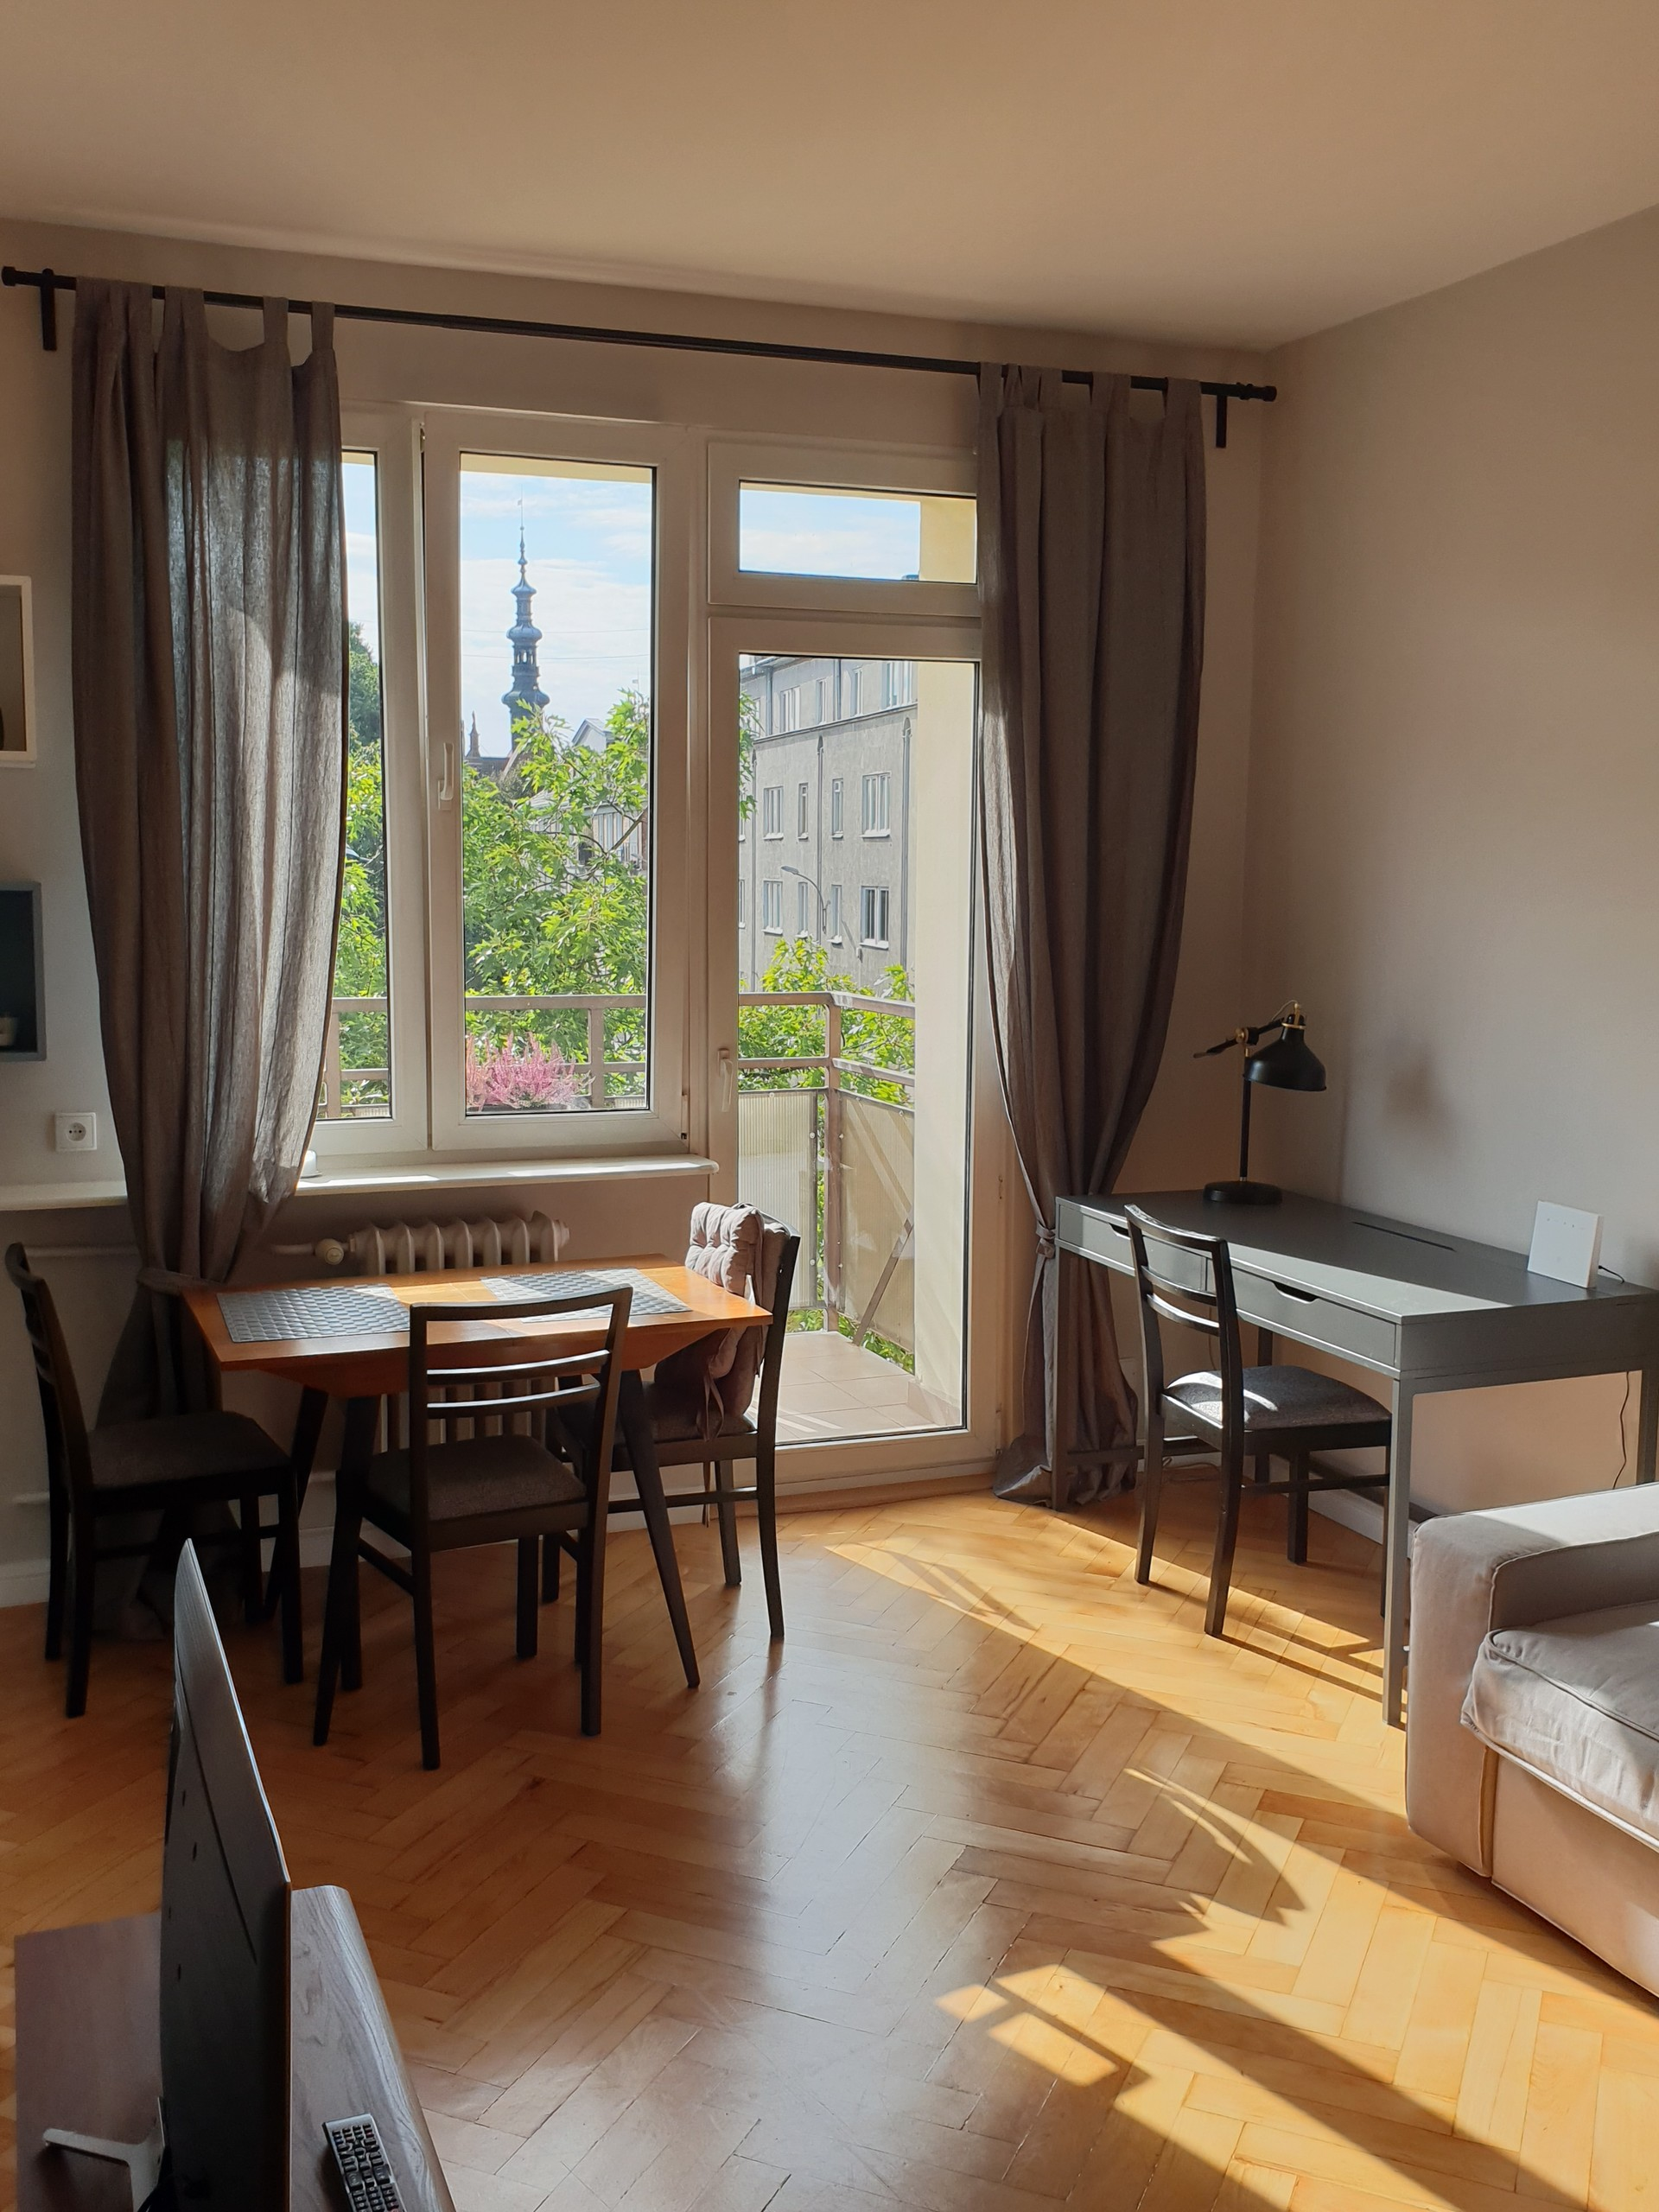 Cosy studio for rent in Gdansk (central location)